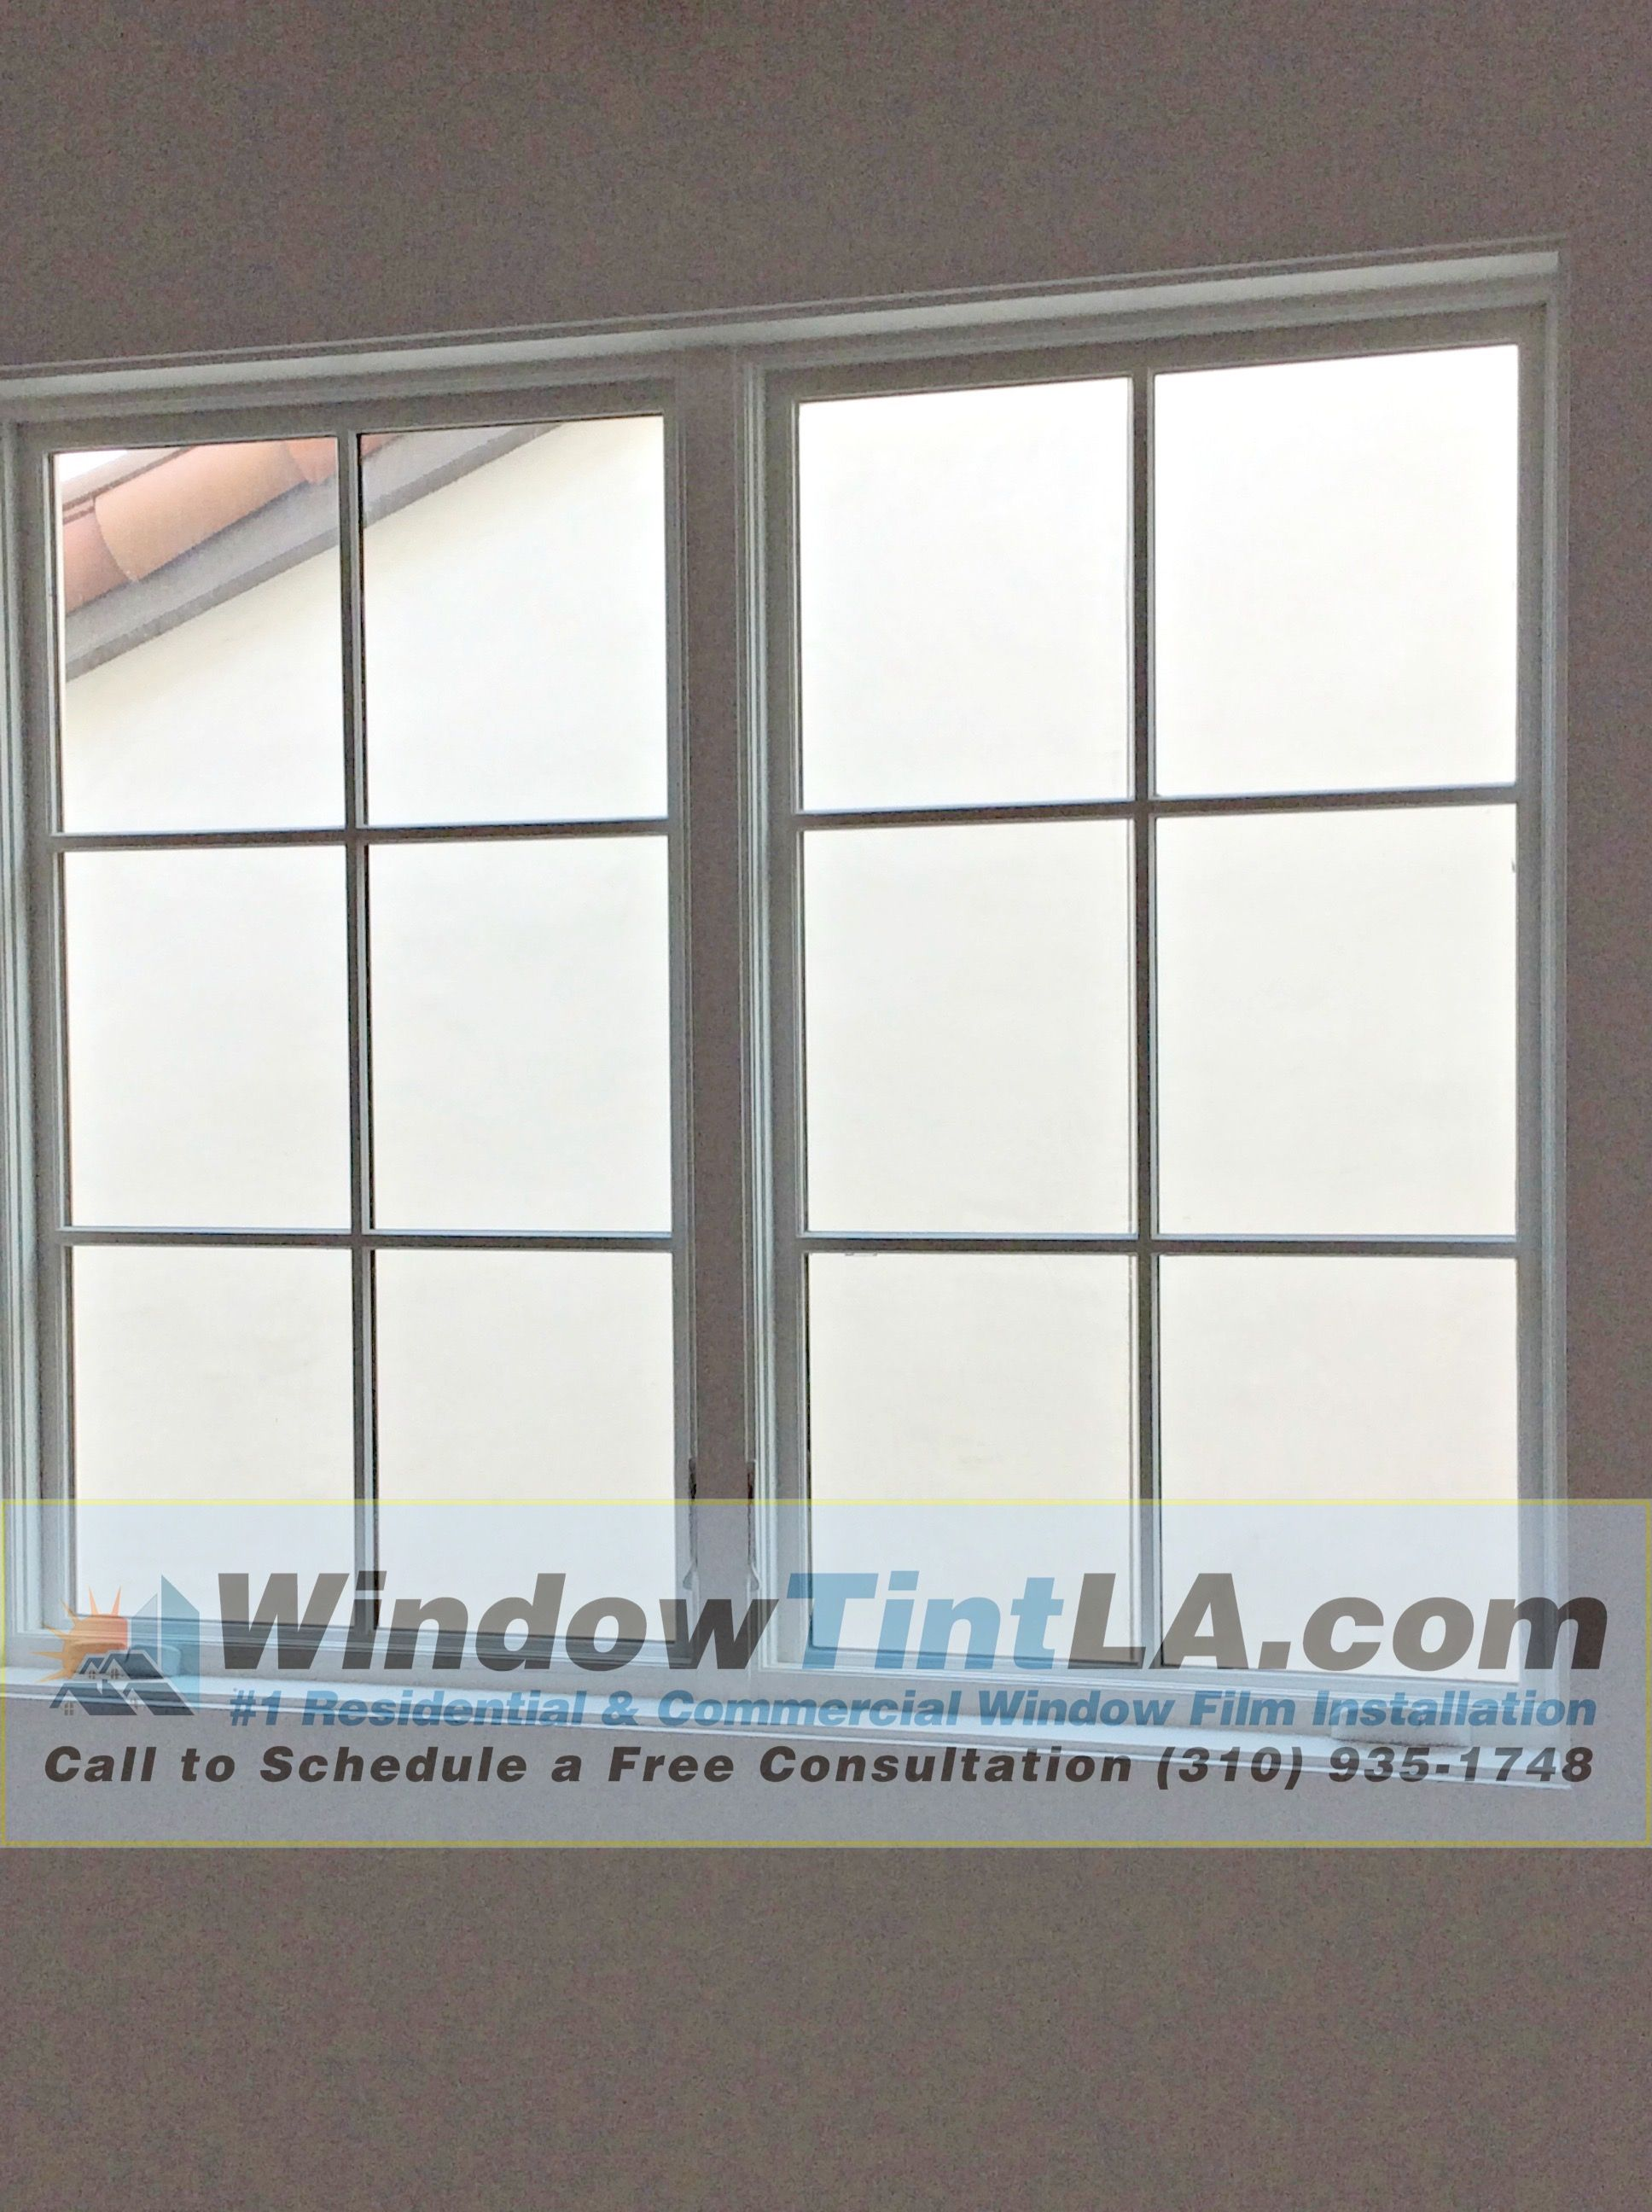 After Frost Film Has Been Installed In Los Angeles Home